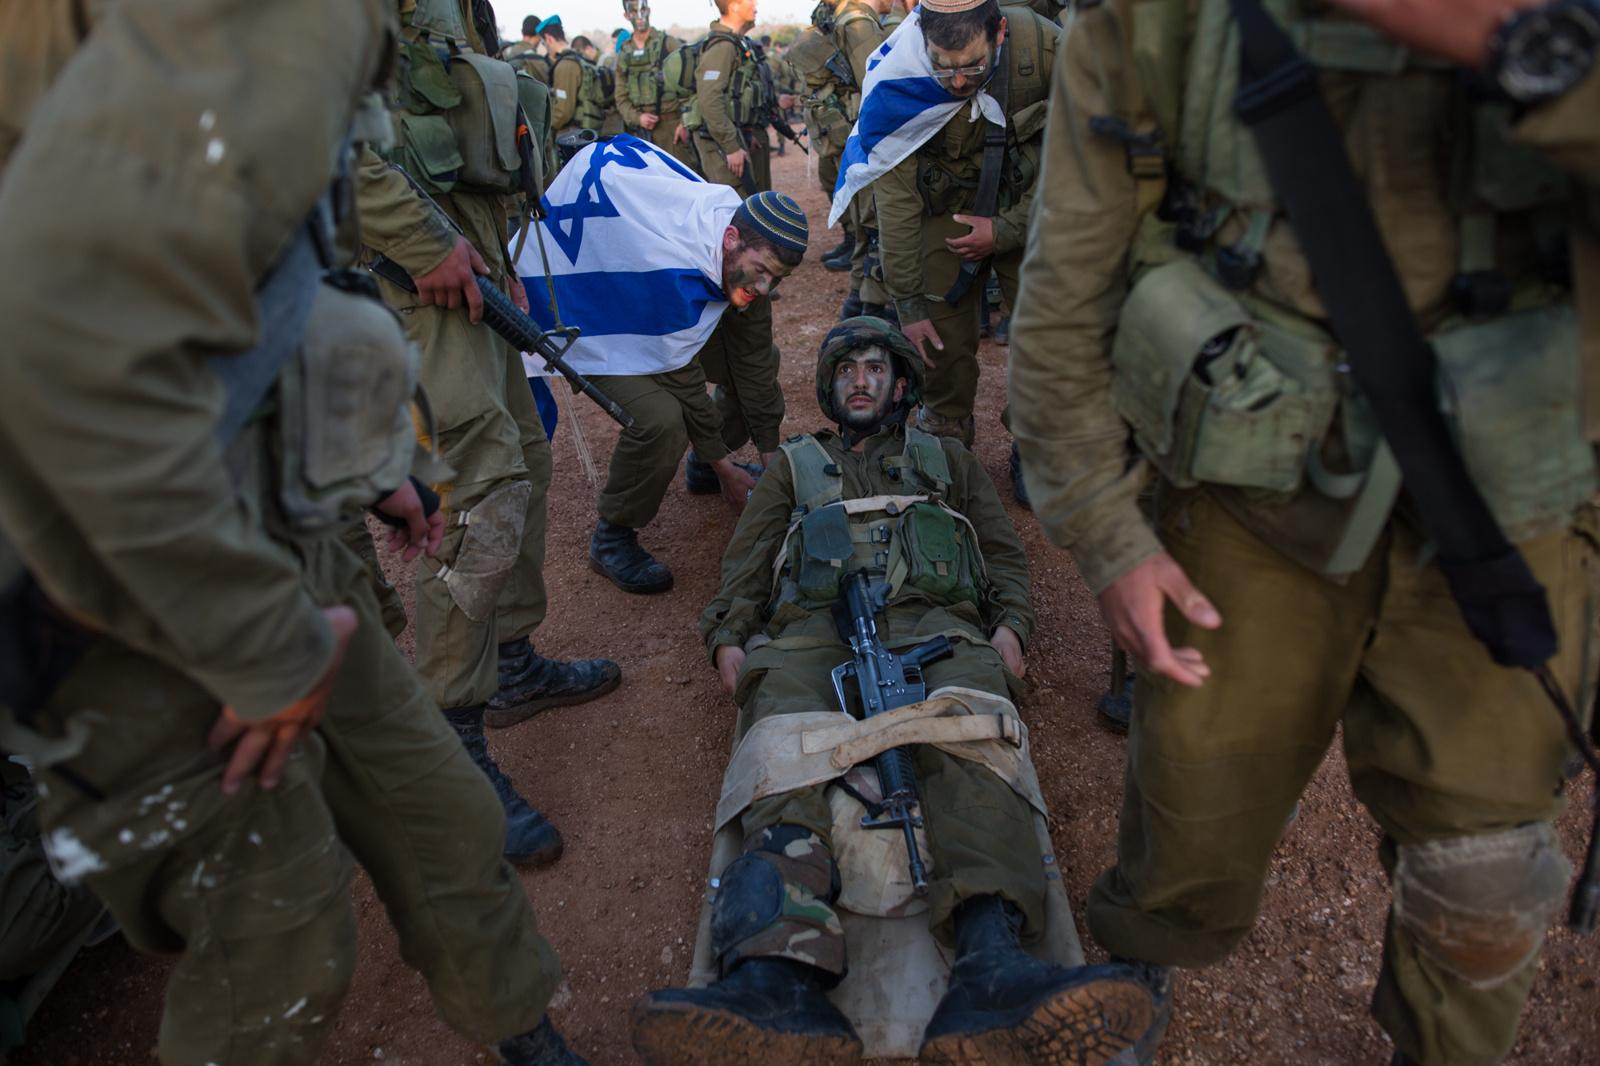 BINYAMINA, ISRAEL - MARCH 08, 2017: Soldiers from the Artillery Corps place their comrade on a stretcher while taking part in a baret march at the end of their basic army training on March 08, 2017, near the Northern town of Binyamina, Israel. Around 600 soldiers participated in the march of around 25km, that lasted from midnight until the early morning hours.